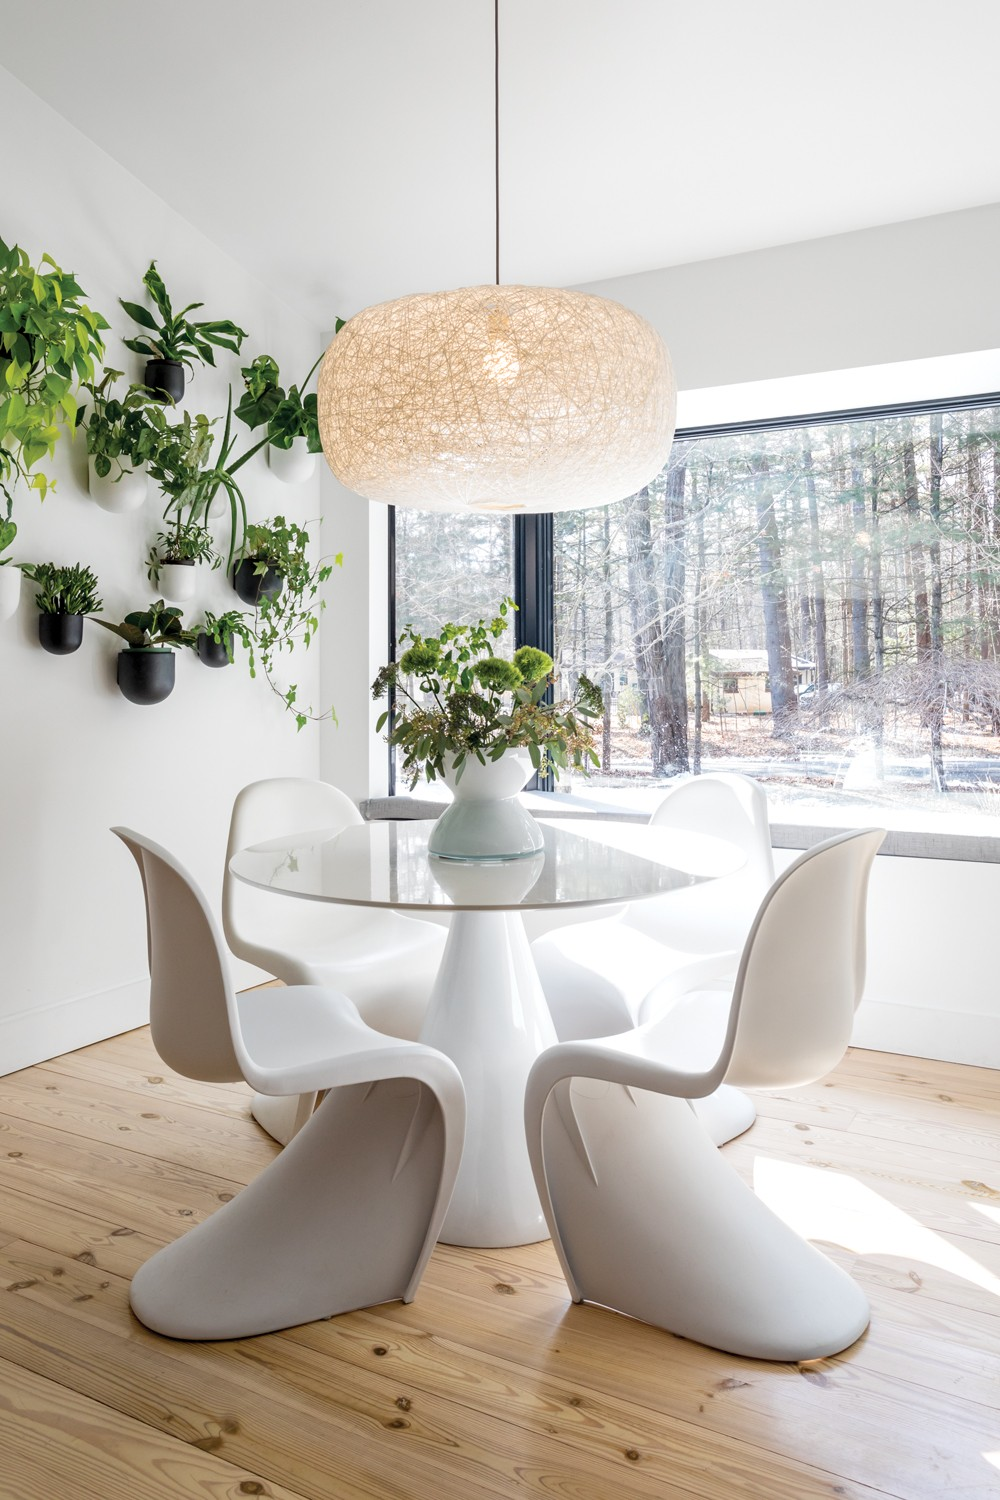 "Sun floods into Oldenburger and Smykowski's kitchen, - even on winter days. The thriving wall garden adds layers of - green to the beige-on-white design. Oldenburger found two - of the Vernor Panton chairs by Vitra at a vintage shop and - matched them with a round table and pillar pedestal base. - The wall pots and hanging lamp are both by West Elm. ""I do - love plants,"" she says. ""I try to have live plants throughout - the house and encourage my clients to also."" - PHOTO BY WINONA BARTON BALLENTINE"